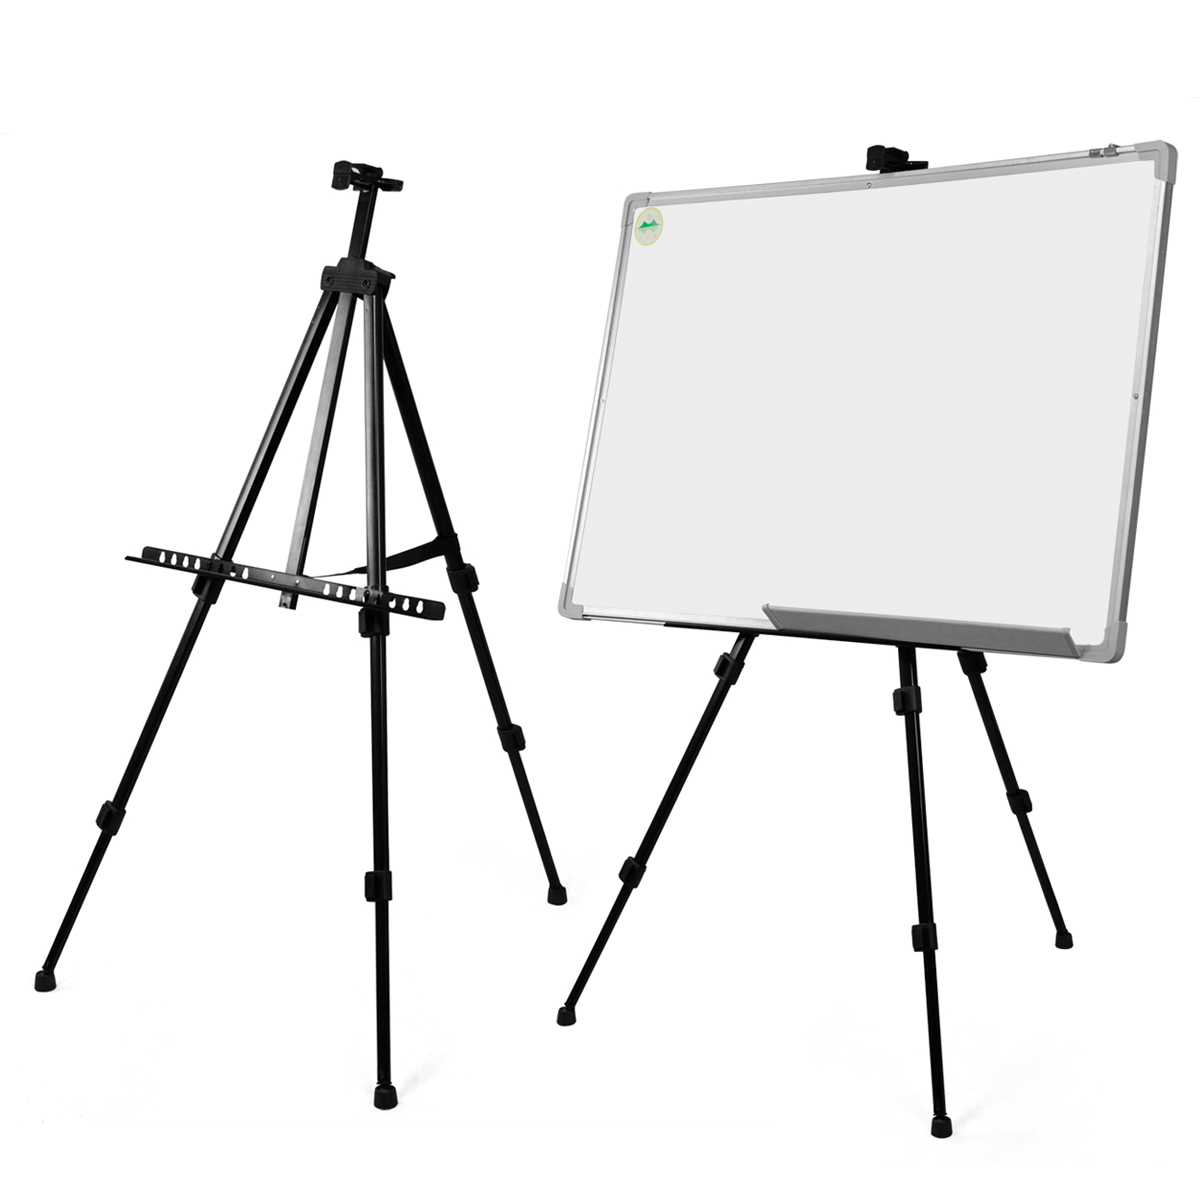 white board artist telescopic field studio painting easel tripod display stand ebay. Black Bedroom Furniture Sets. Home Design Ideas